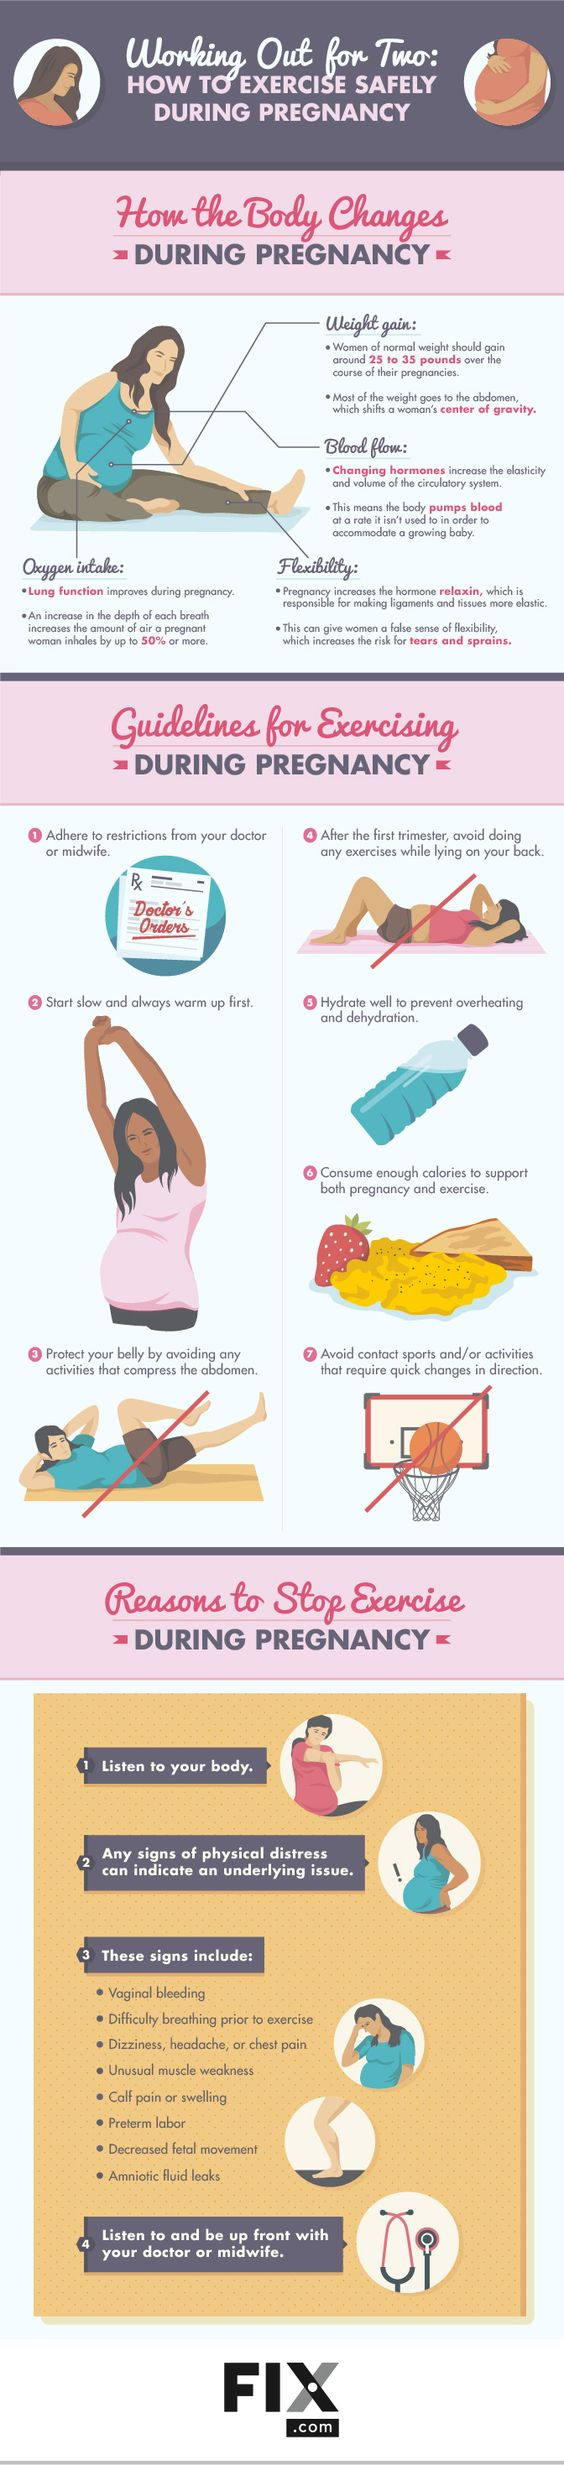 Congratulations! You're pregnant! One of the main concerns women have during pregnancy is maintaining a healthy weight. Learn more about the dos and don'ts of exercising while pregnant.